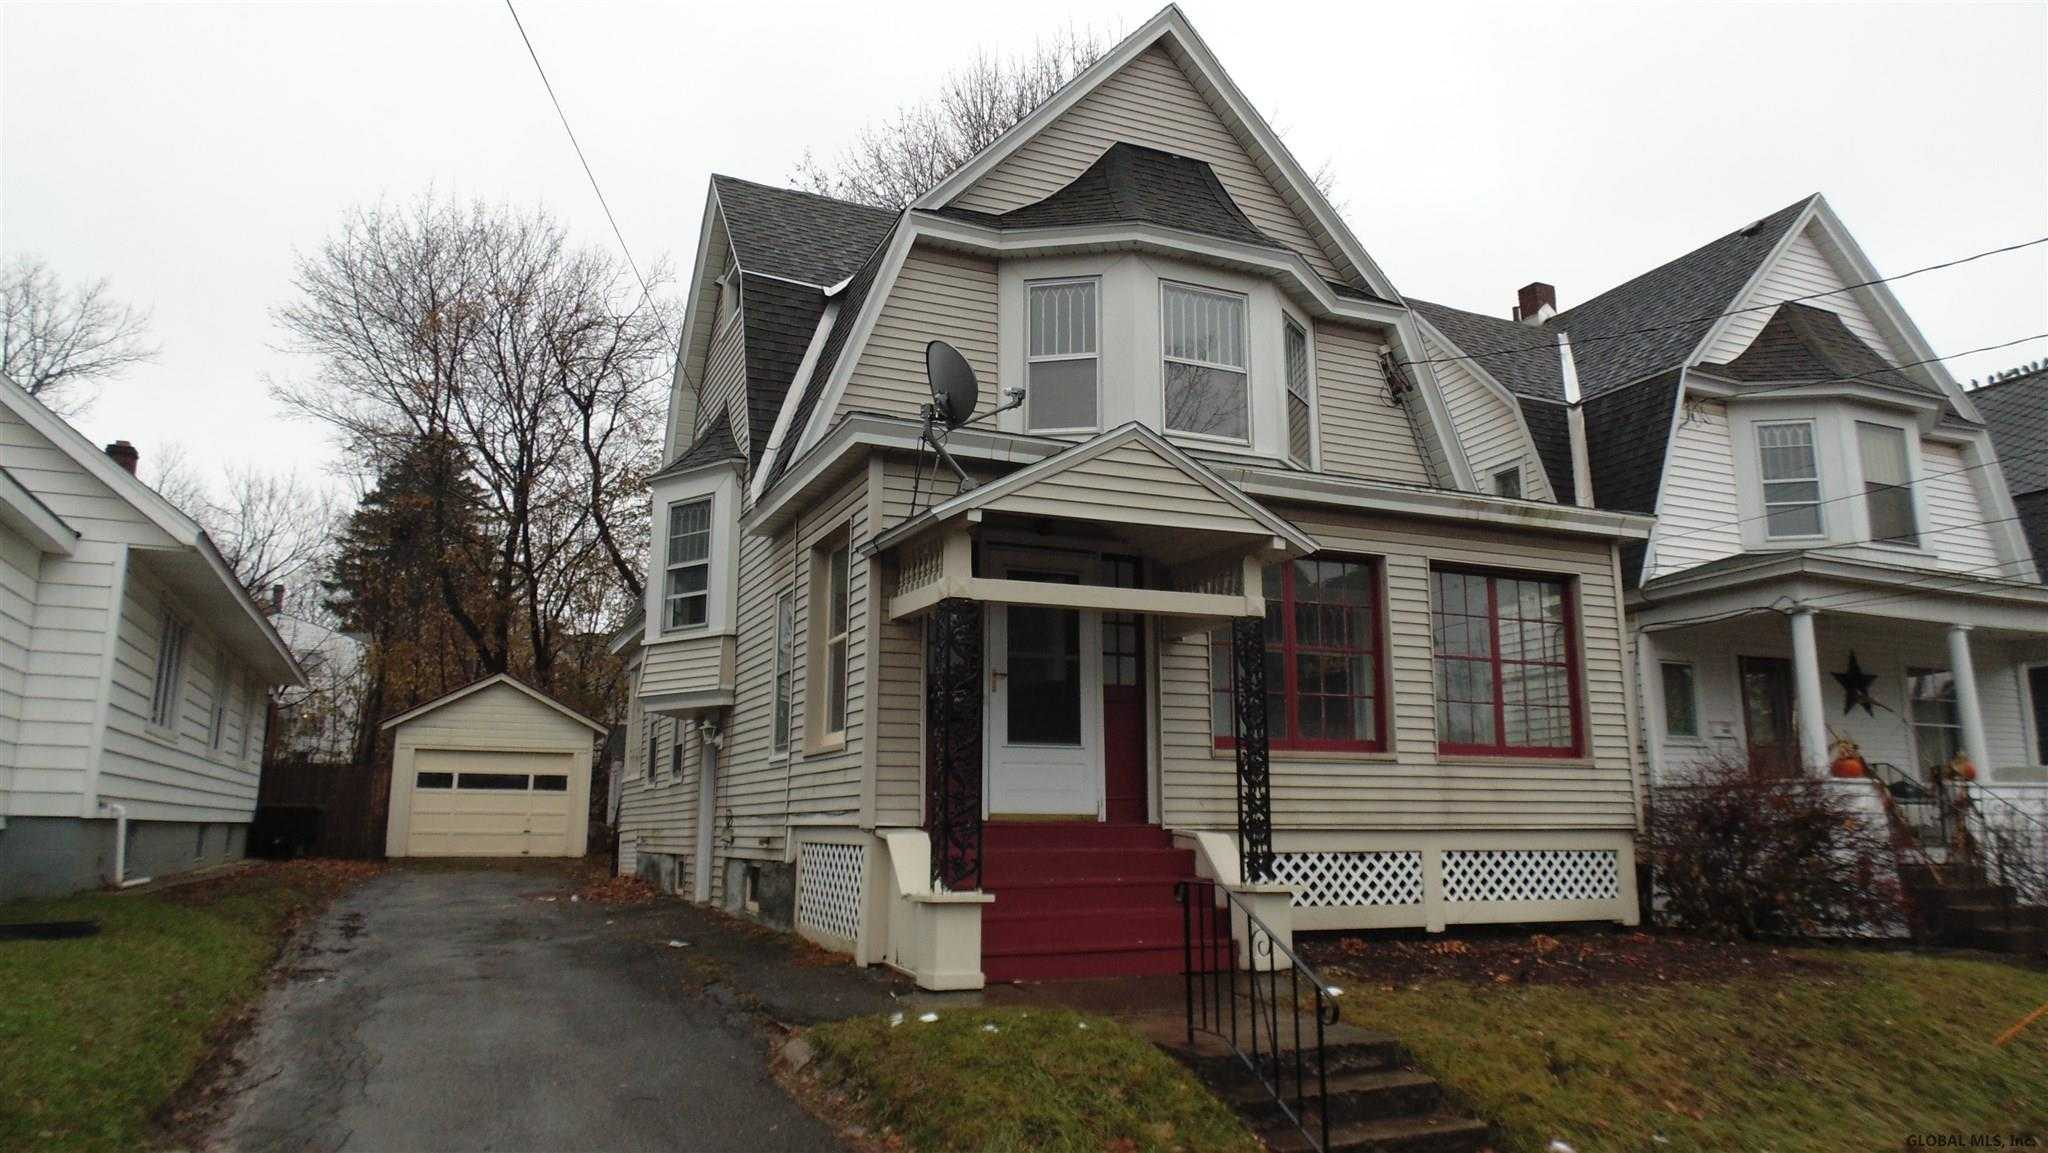 $142,000 - 3Br/1Ba -  for Sale in Schenectady